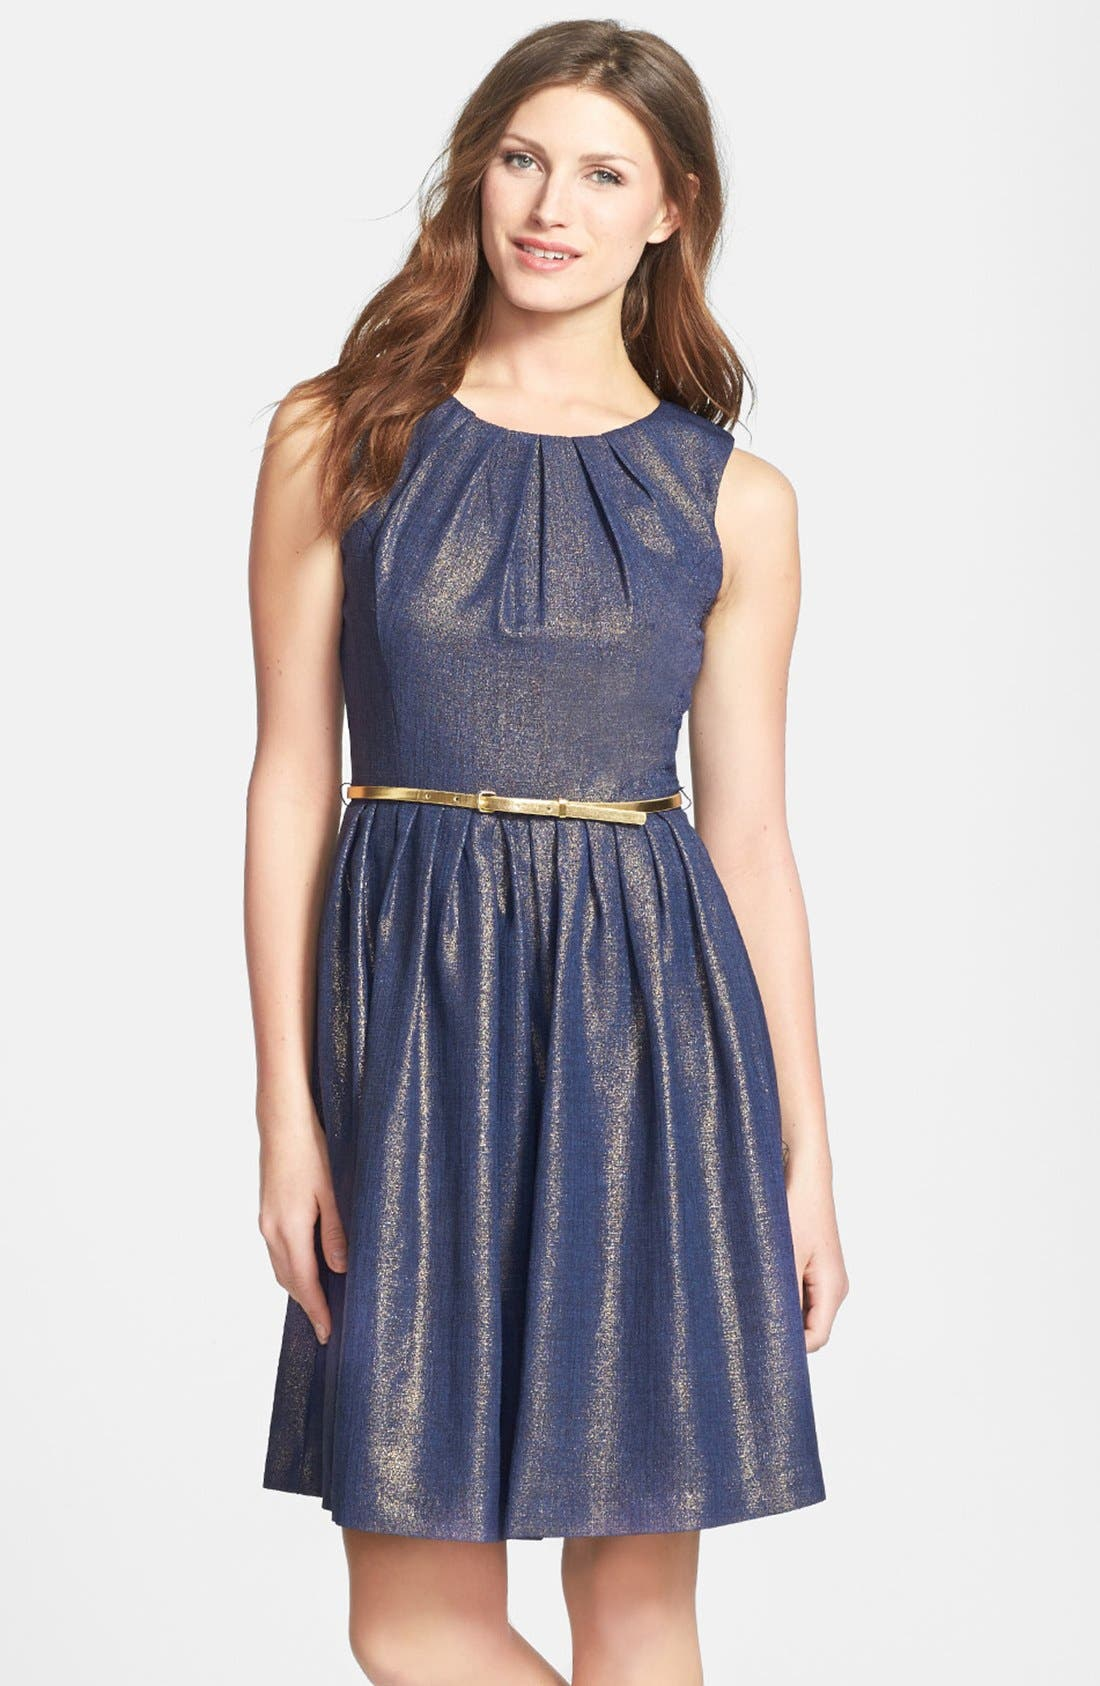 Main Image - Ellen Tracy Metallic Sleeveless Dress (Regular & Petite)